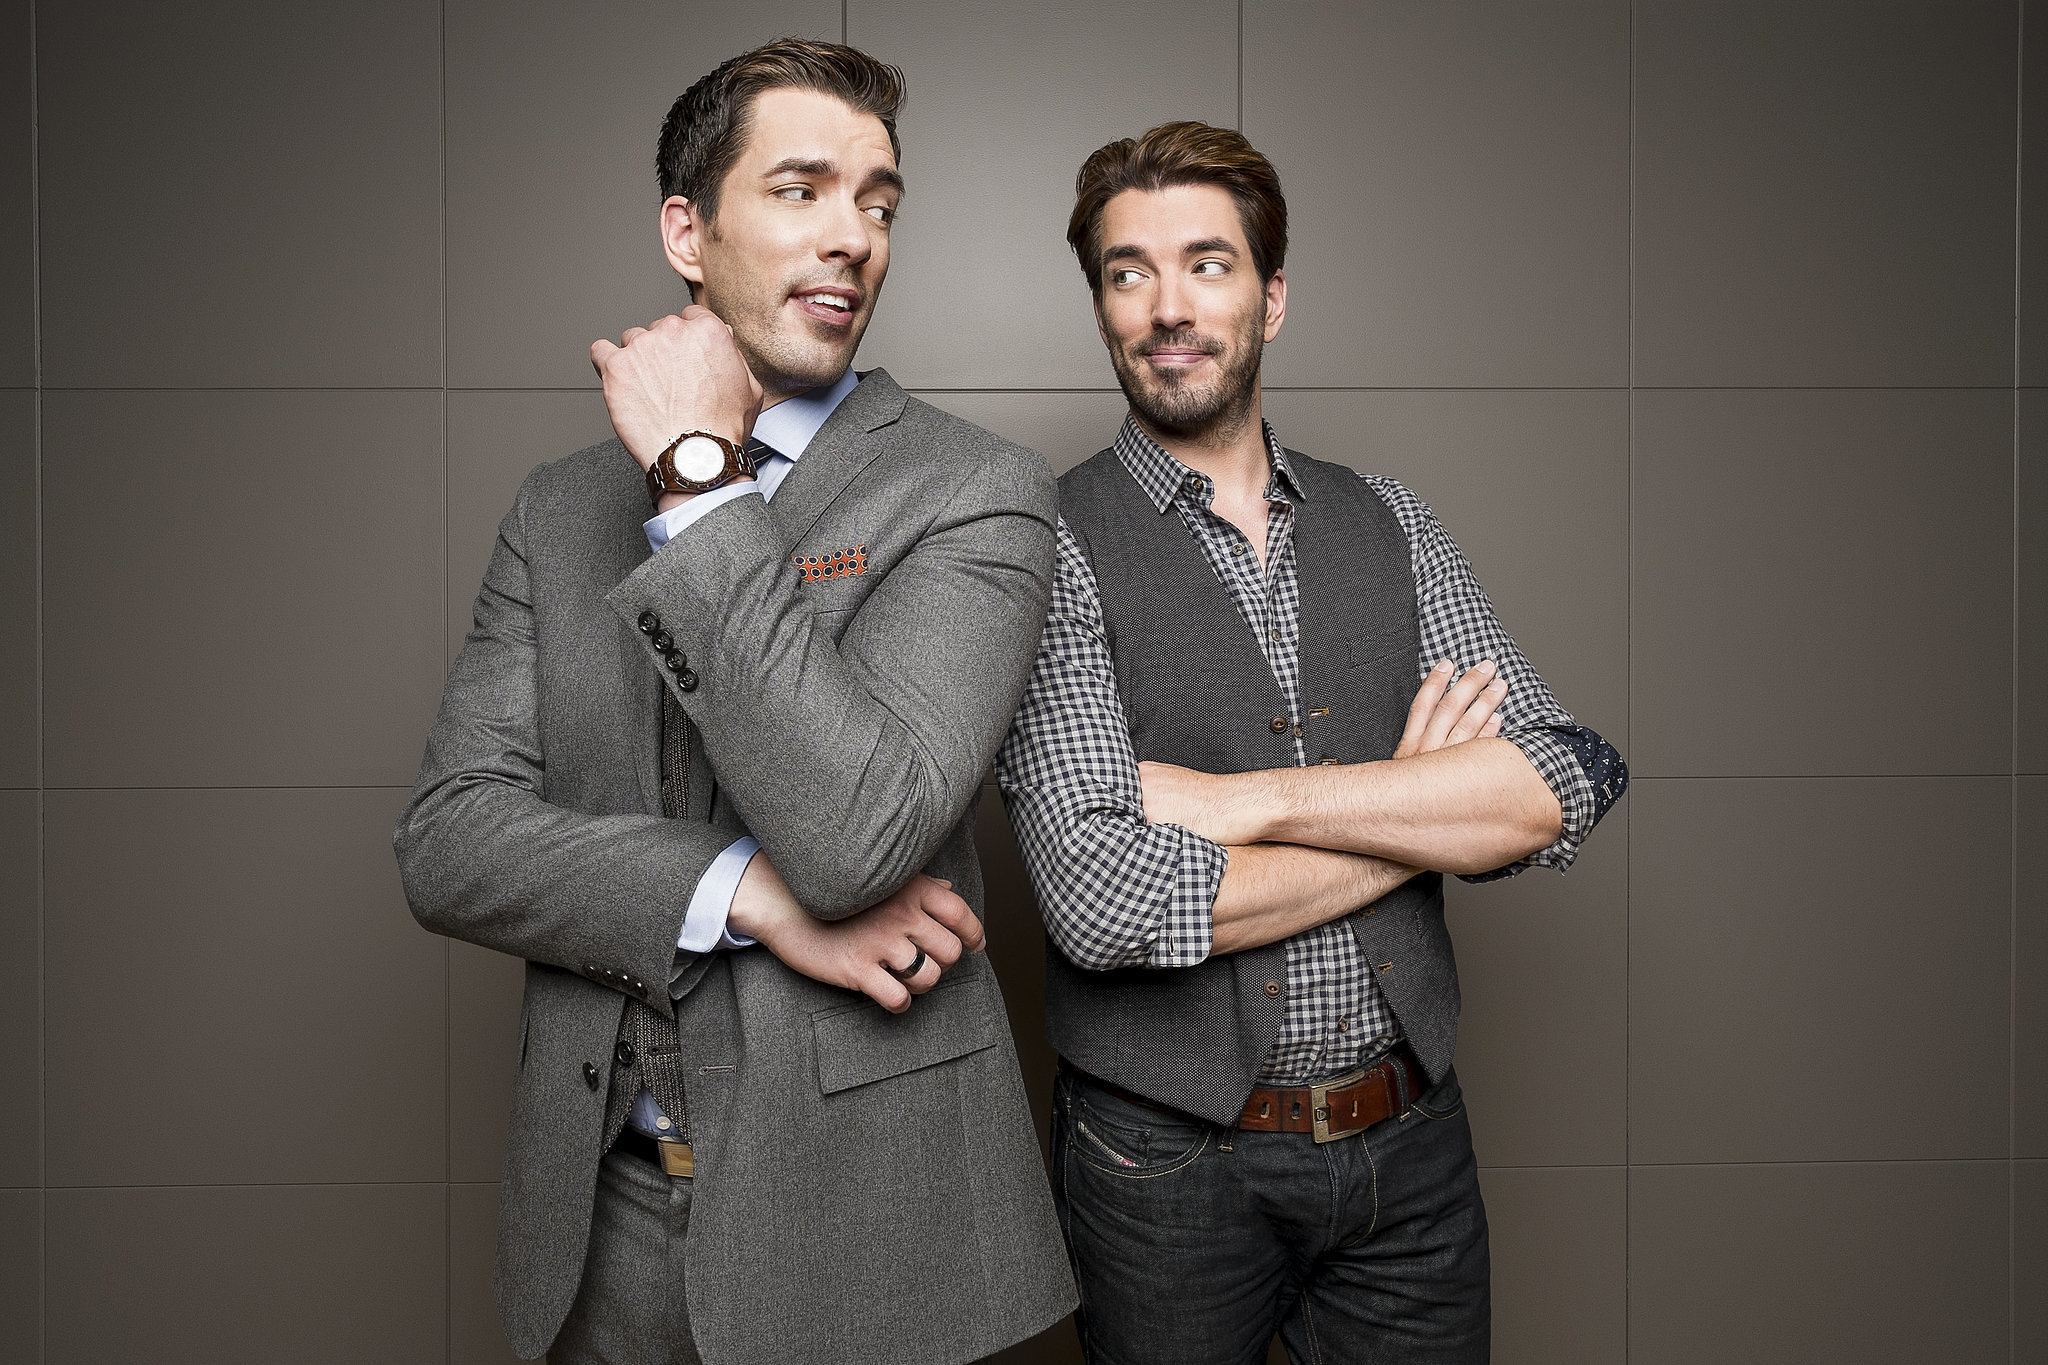 Hgtv The Property Brothers Are They Gay